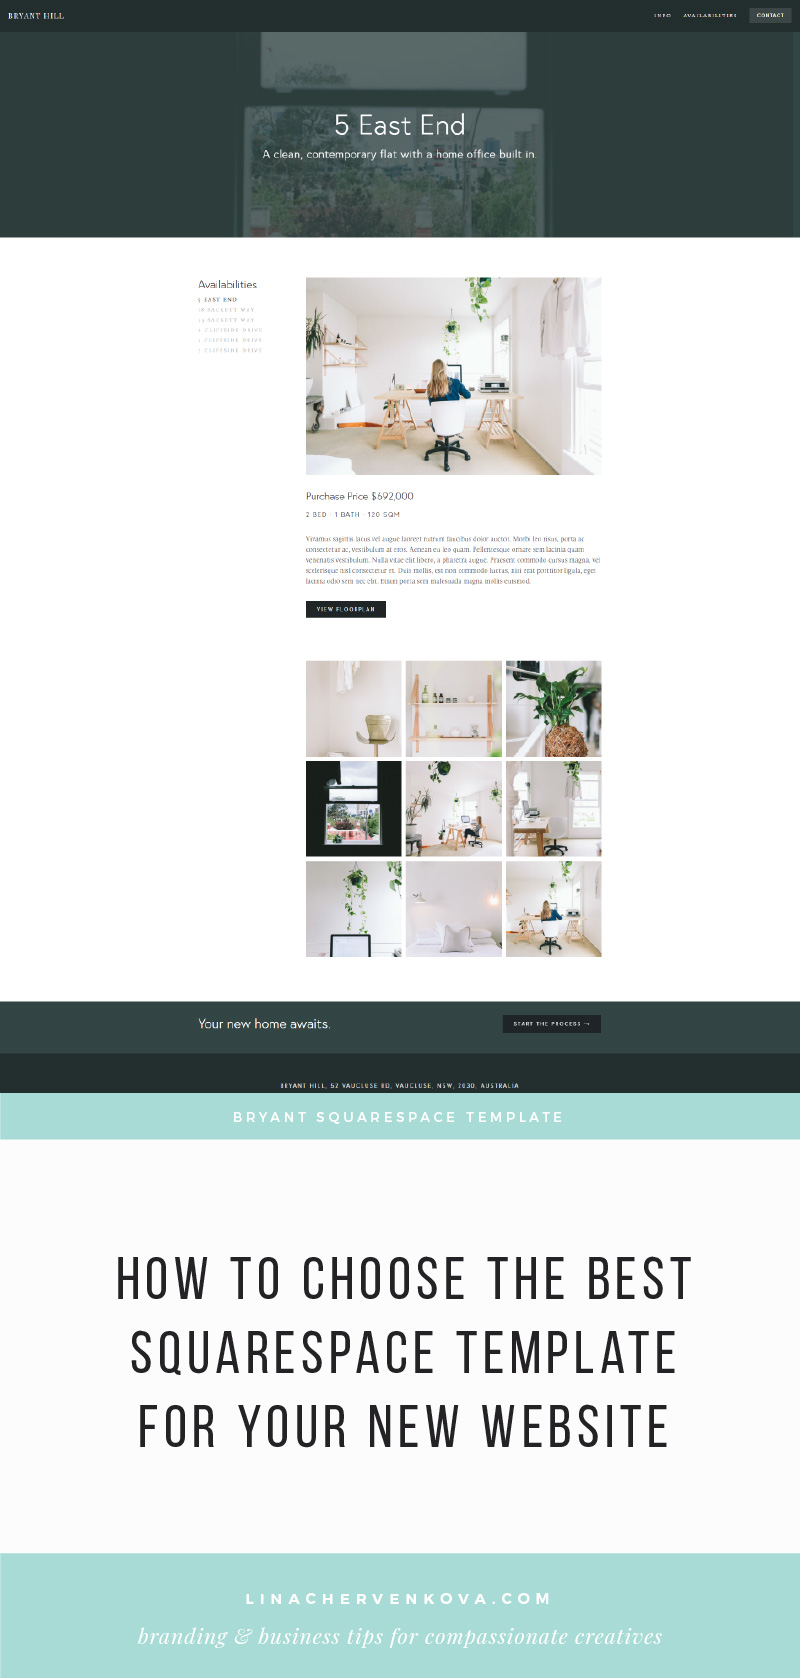 How to choose the best Squarespace template for your new website | linachervenkova.com